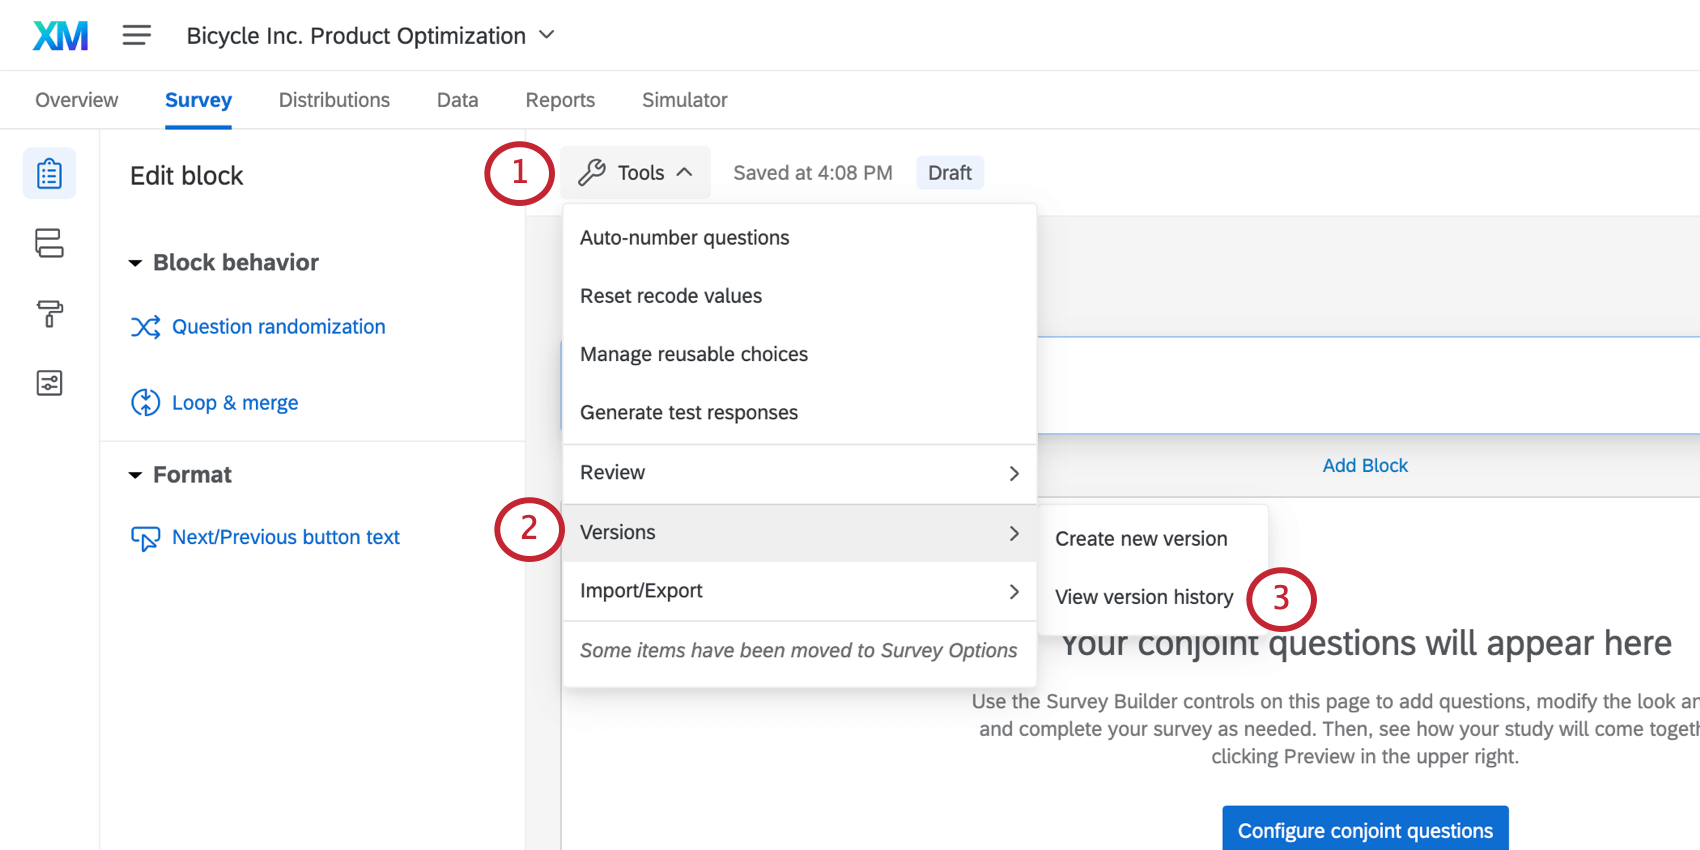 Selecting versions form the tools menu in the survey tab